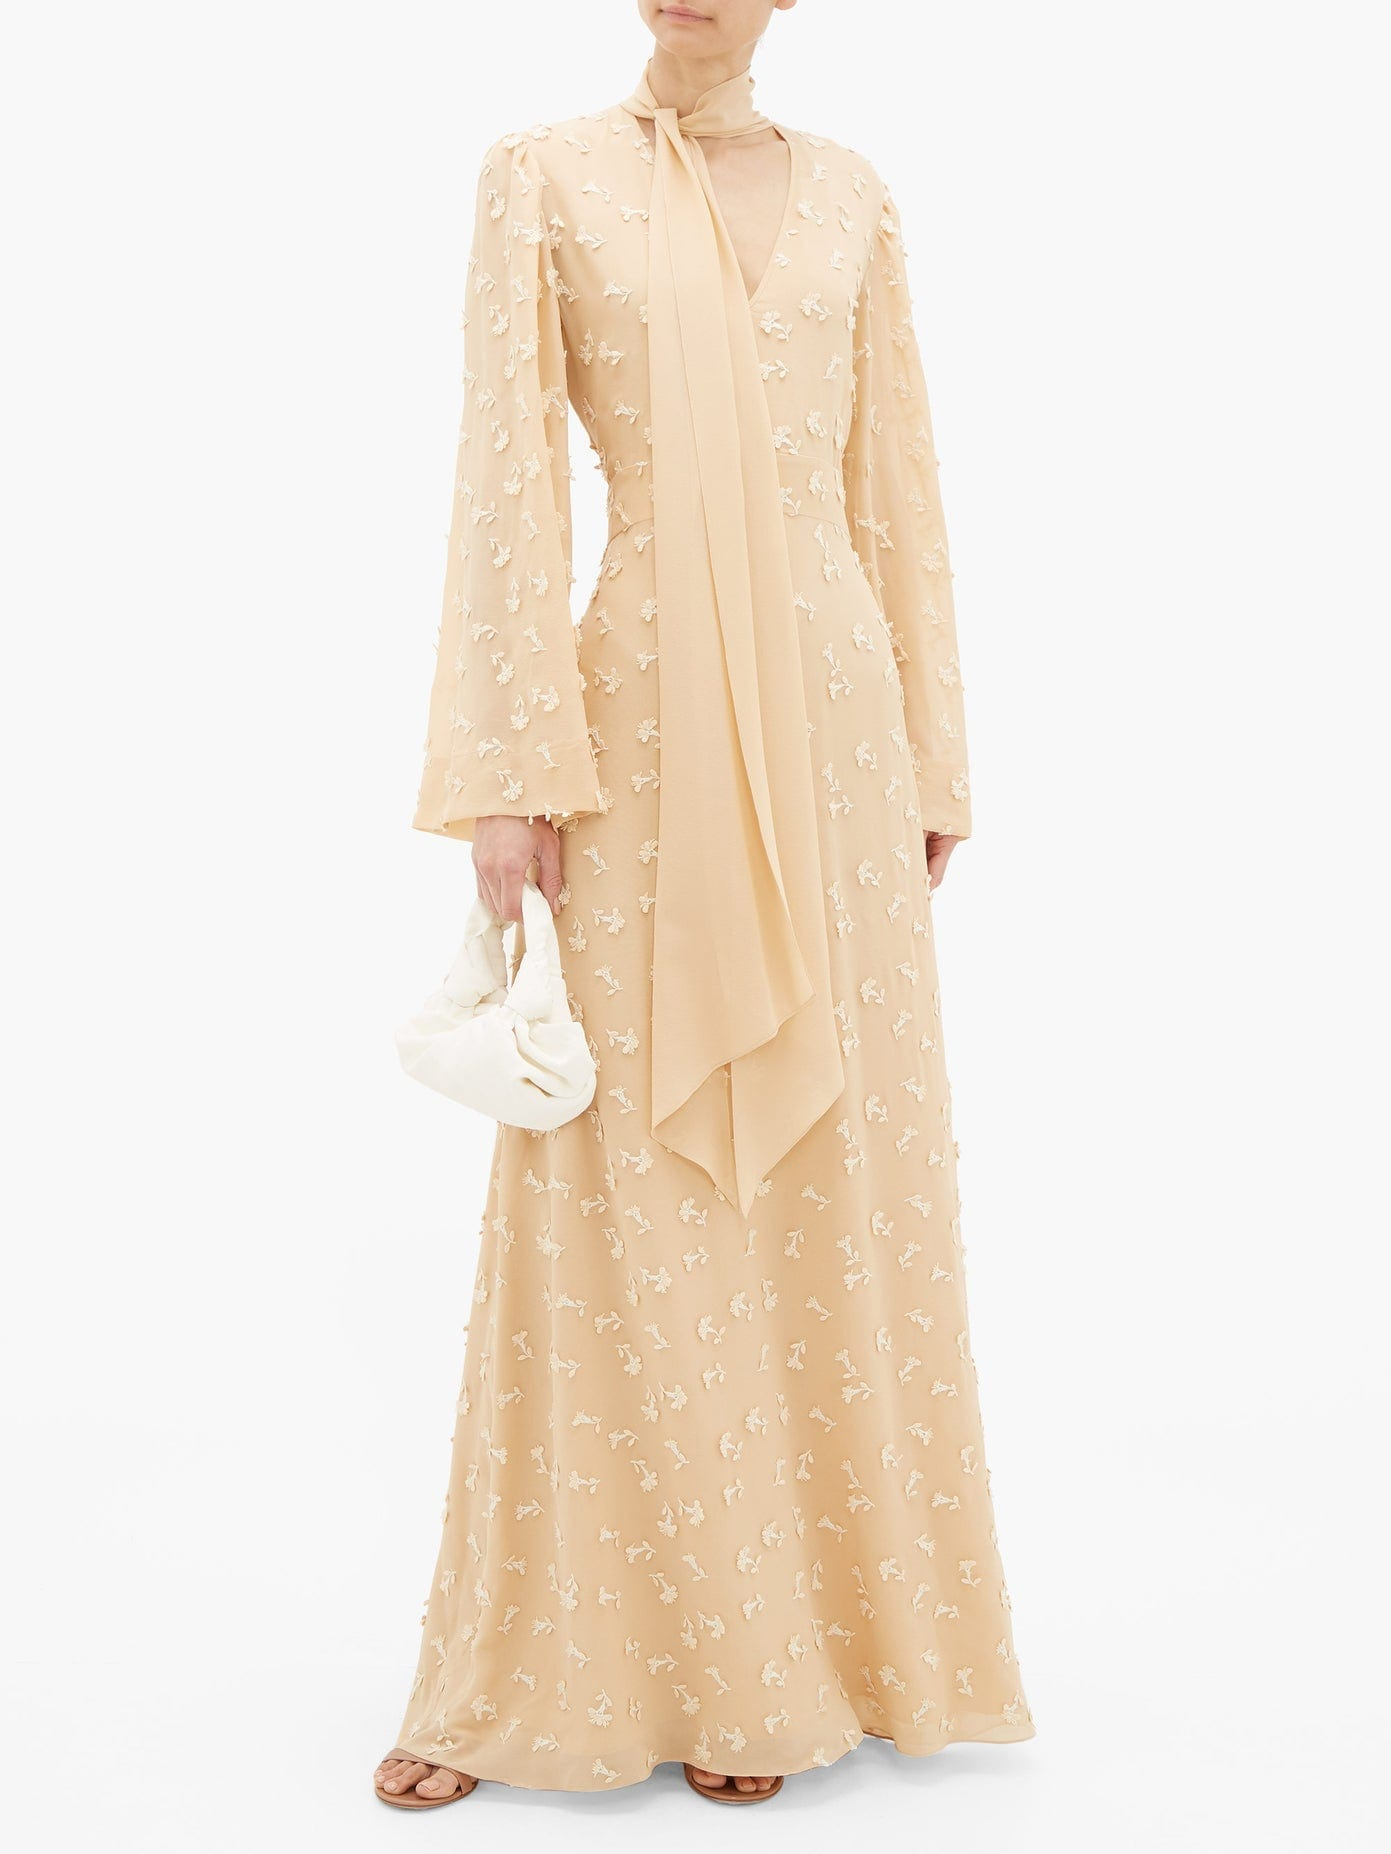 CHLOÉ Floral Appliqué Silk-Georgette Dress